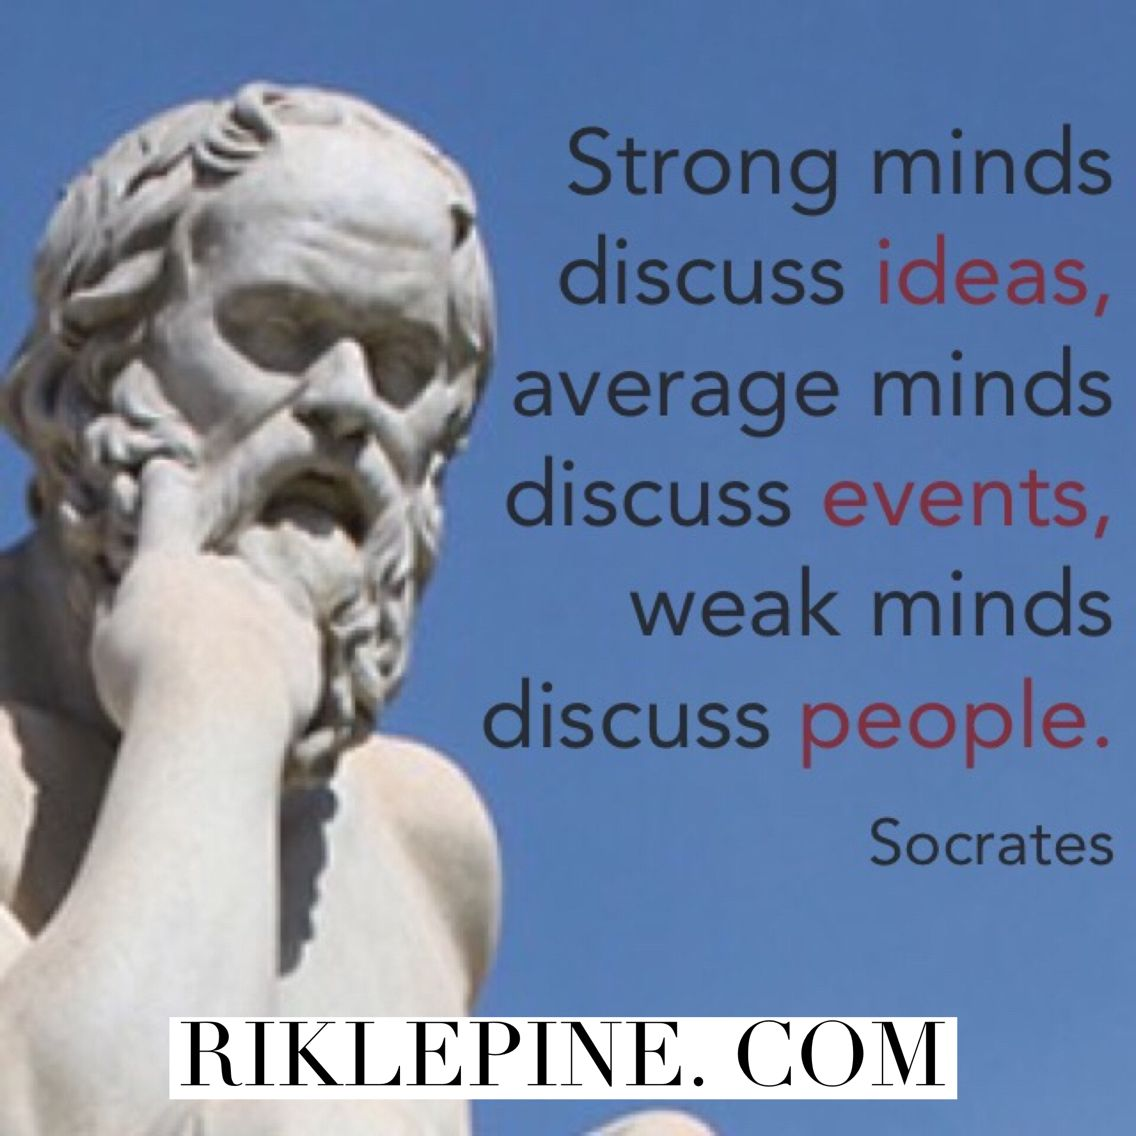 What do you discuss most often? #wisdom #ideas #socrates